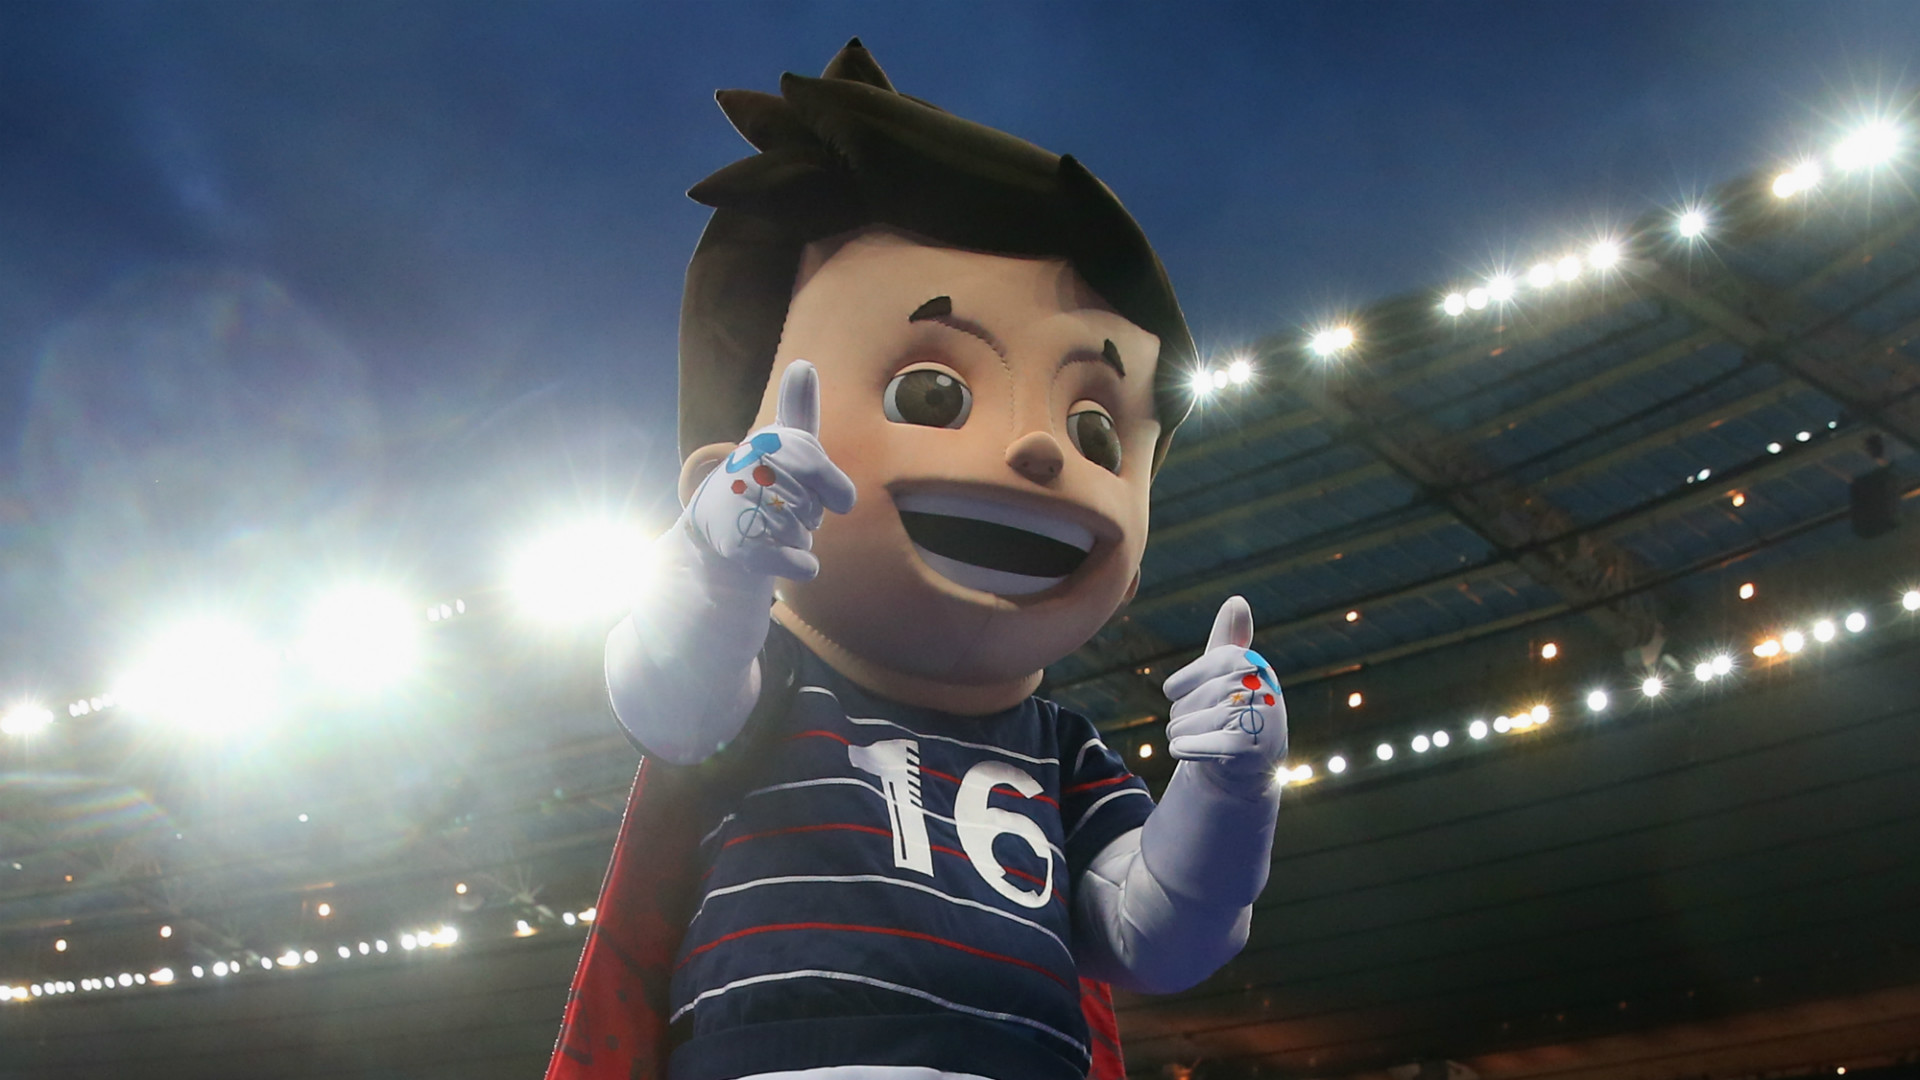 Euro 2020 mascot: What is it & who are the previous finals mascots?